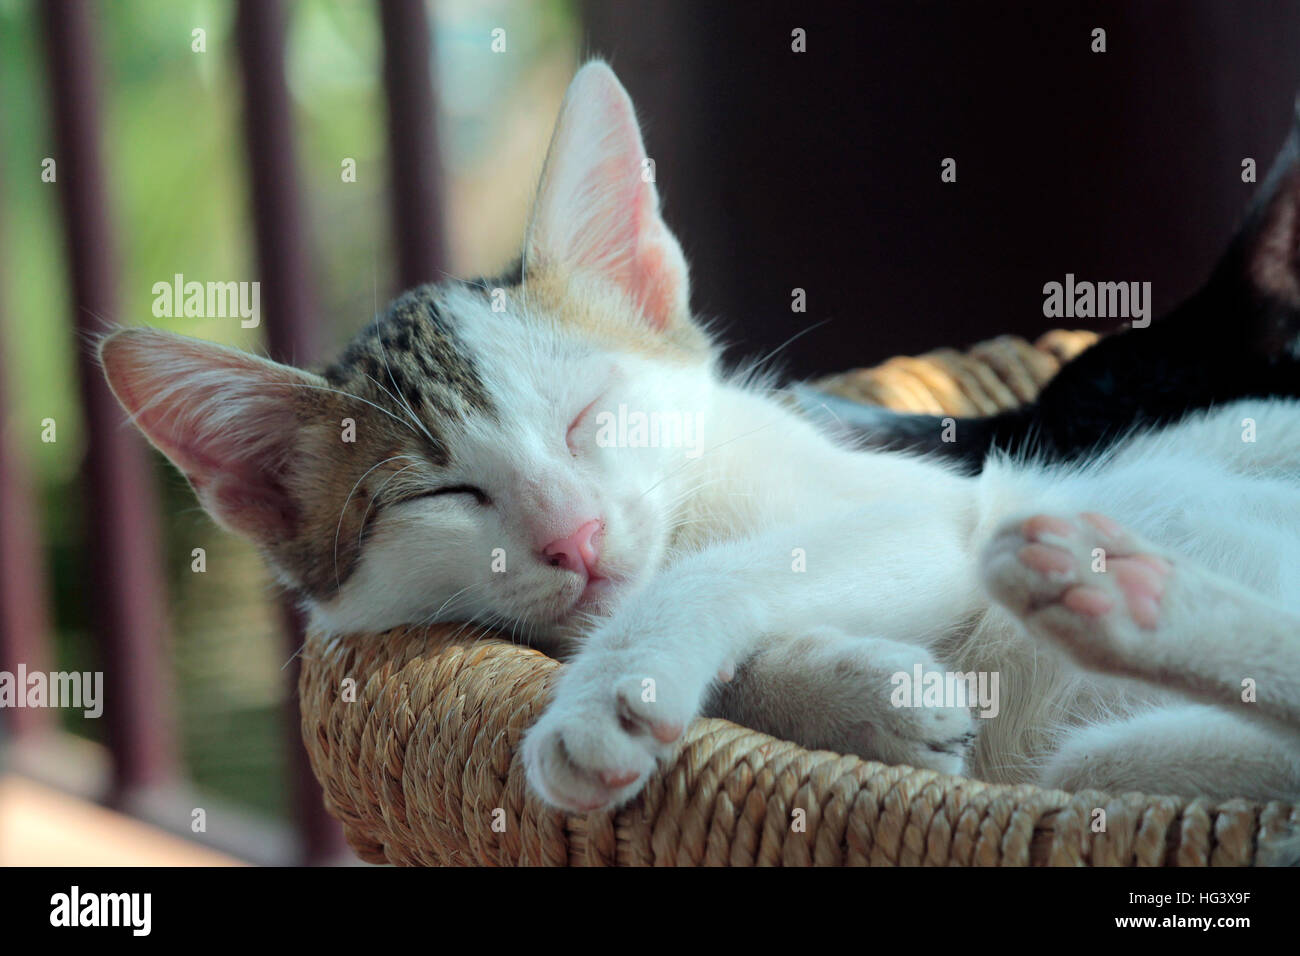 Sleeping Beauty - Stock Image